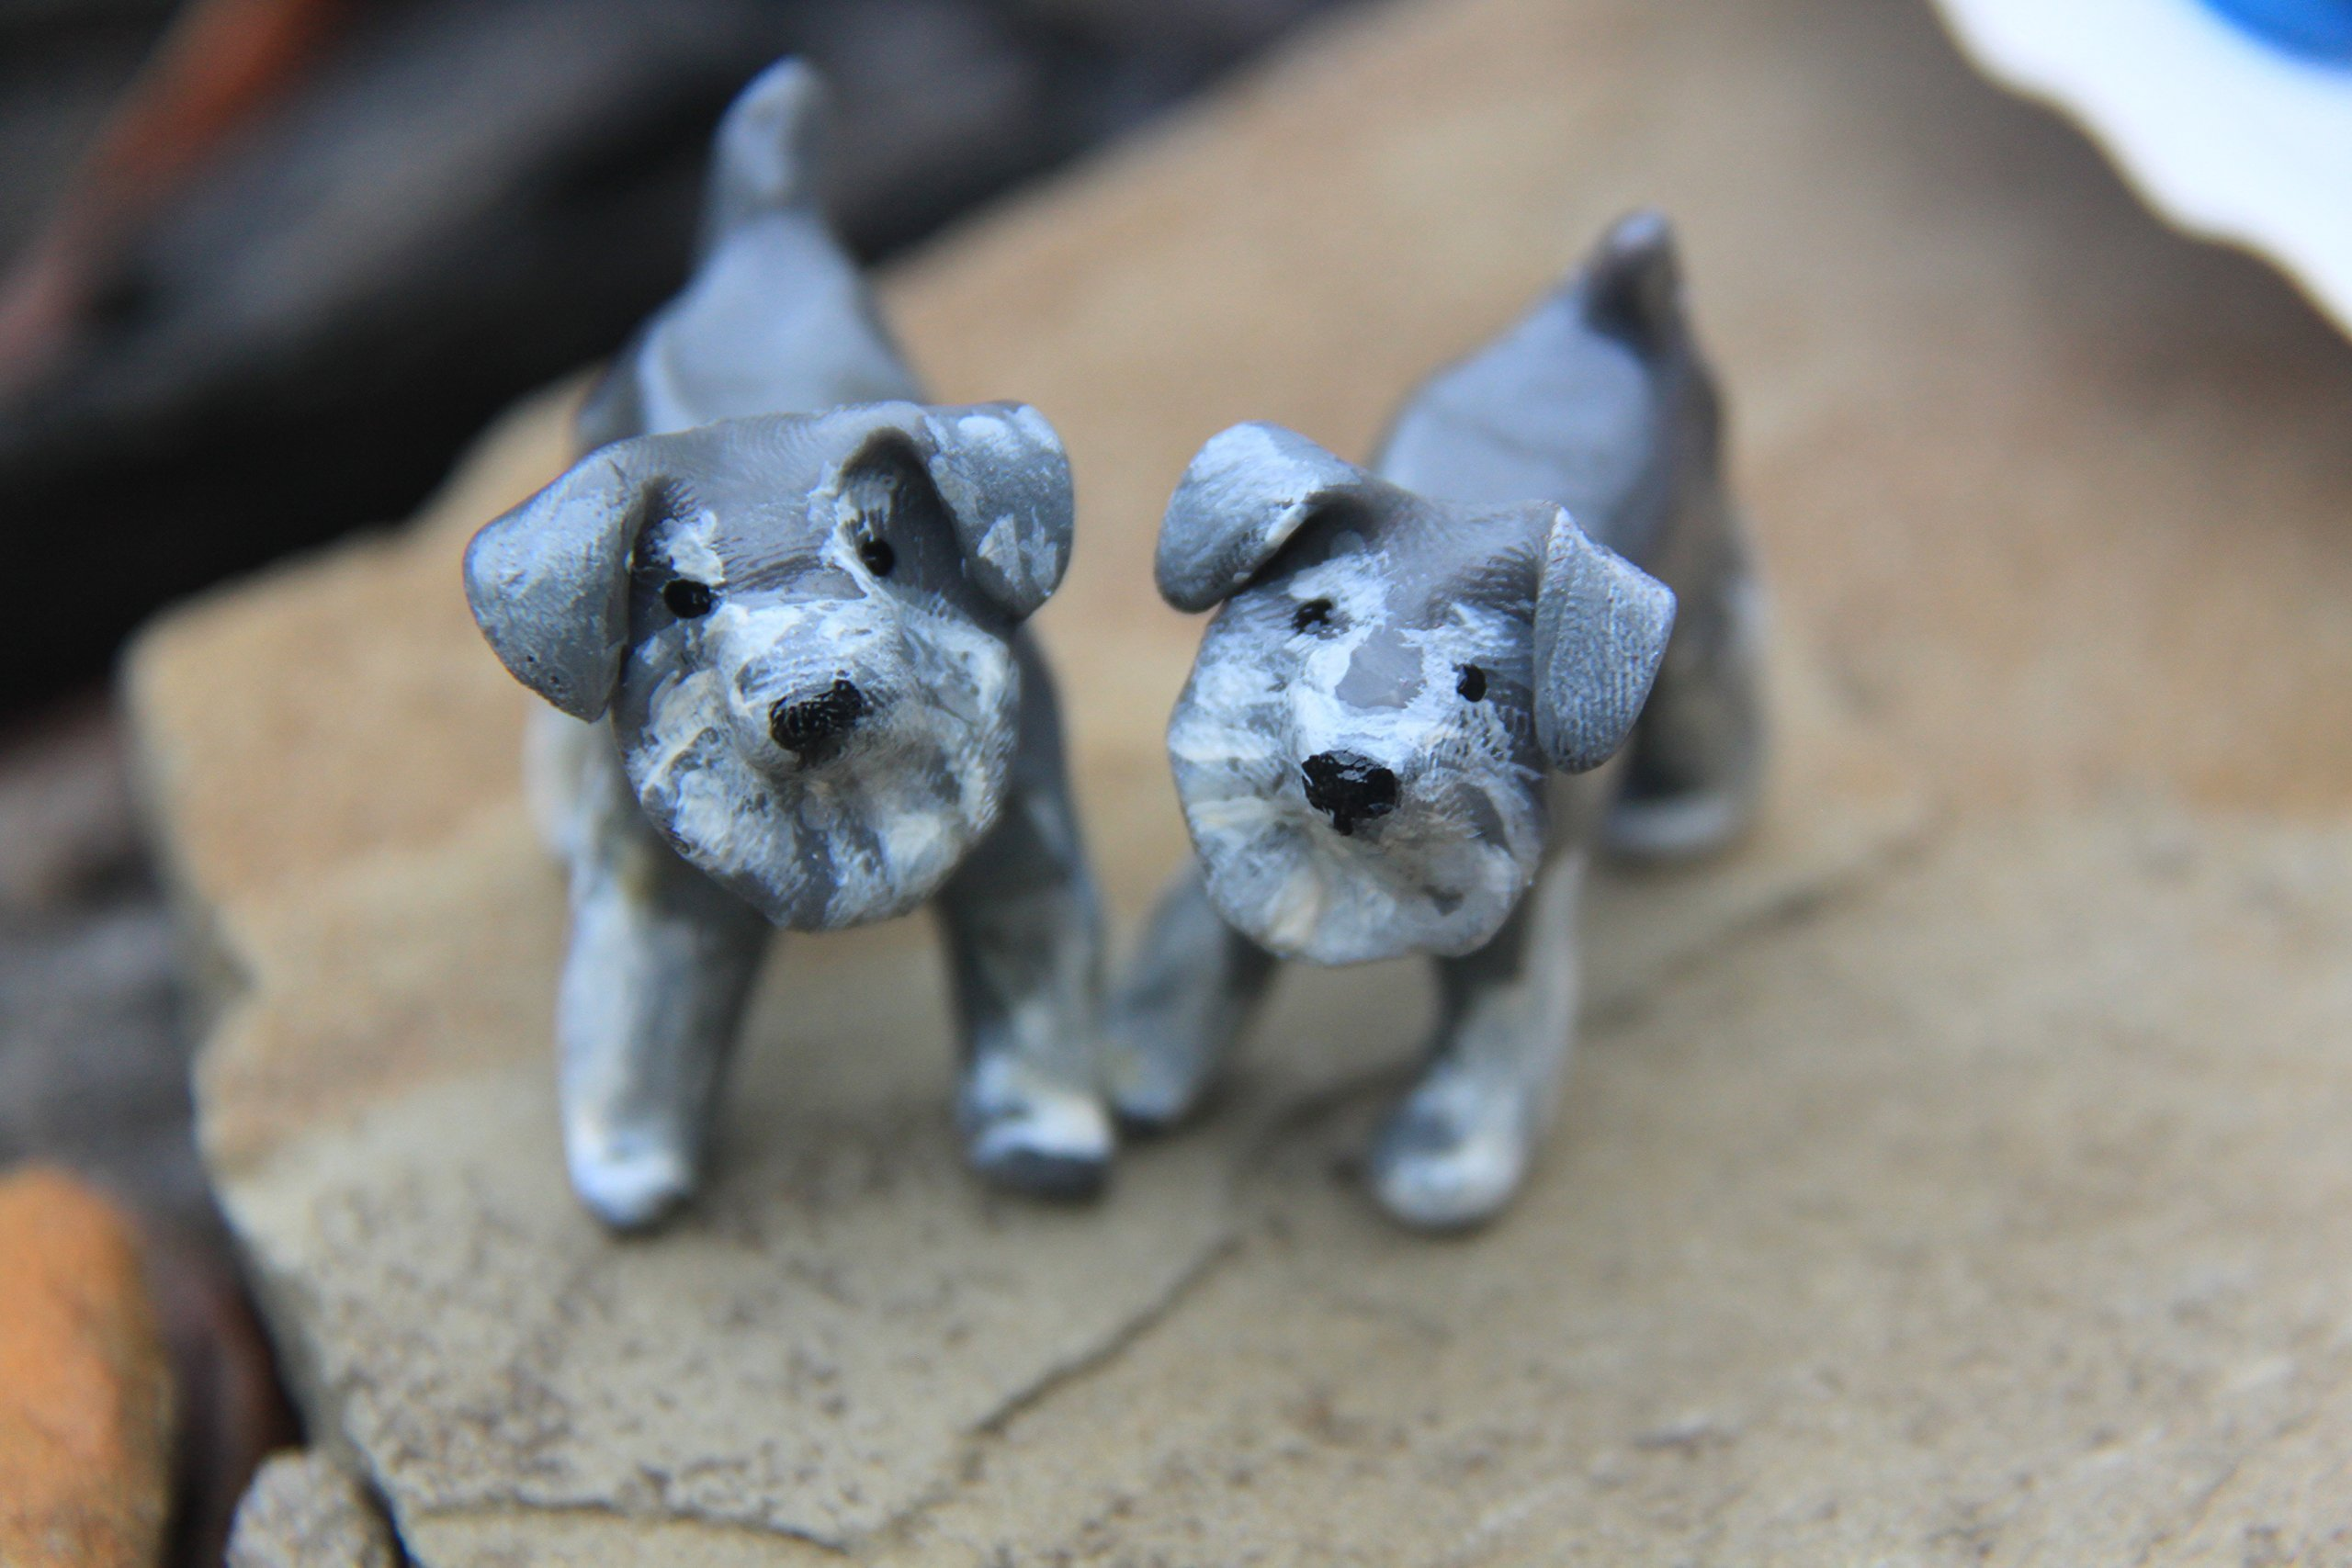 Schnauzer, Clay Dog, Polymer Clay Animal Totem for Bonsai or Succulent, Parliament and Peck